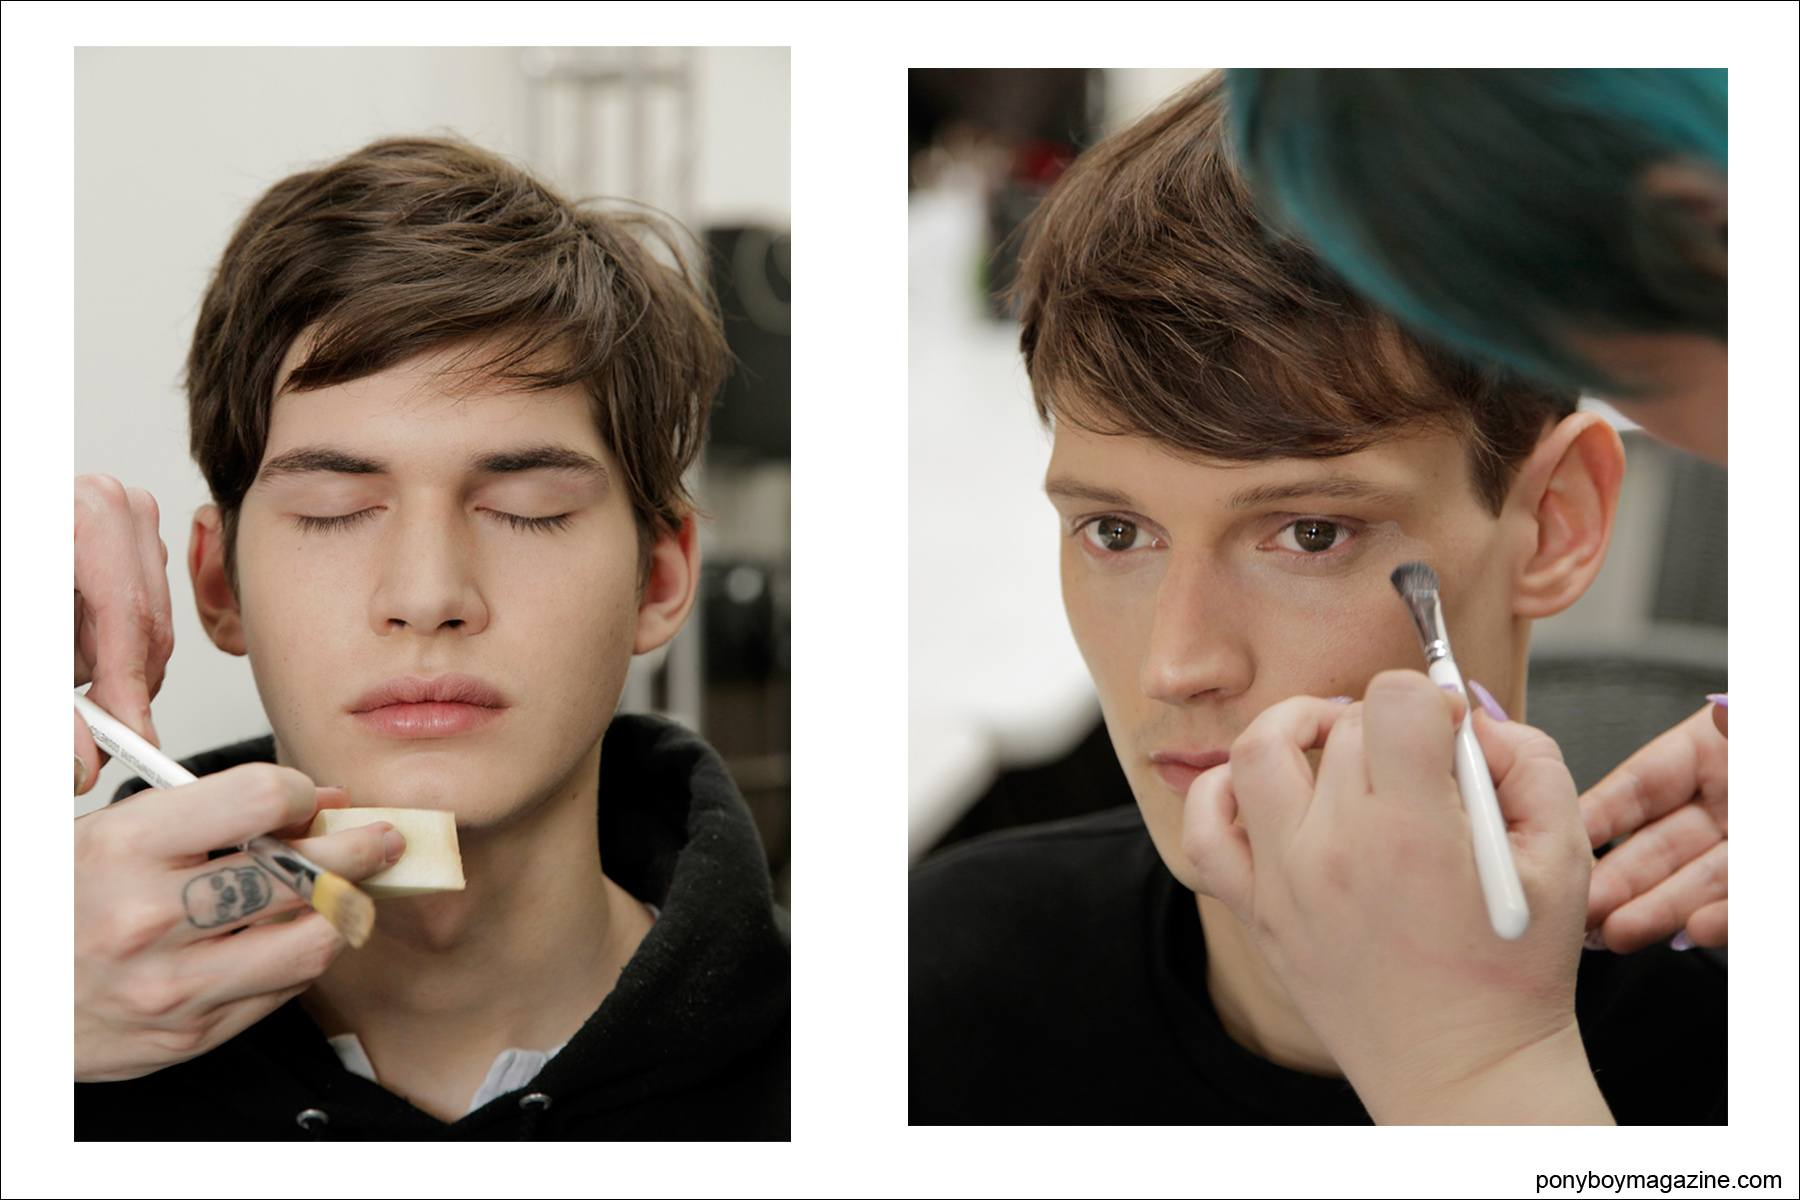 Obsessive Compulsive Cosmetics make-up team primp male models backstage before walking in the Duckie Brown A/W 2014 show. Photographed by Alexander Thompson for Ponyboy Magazine.